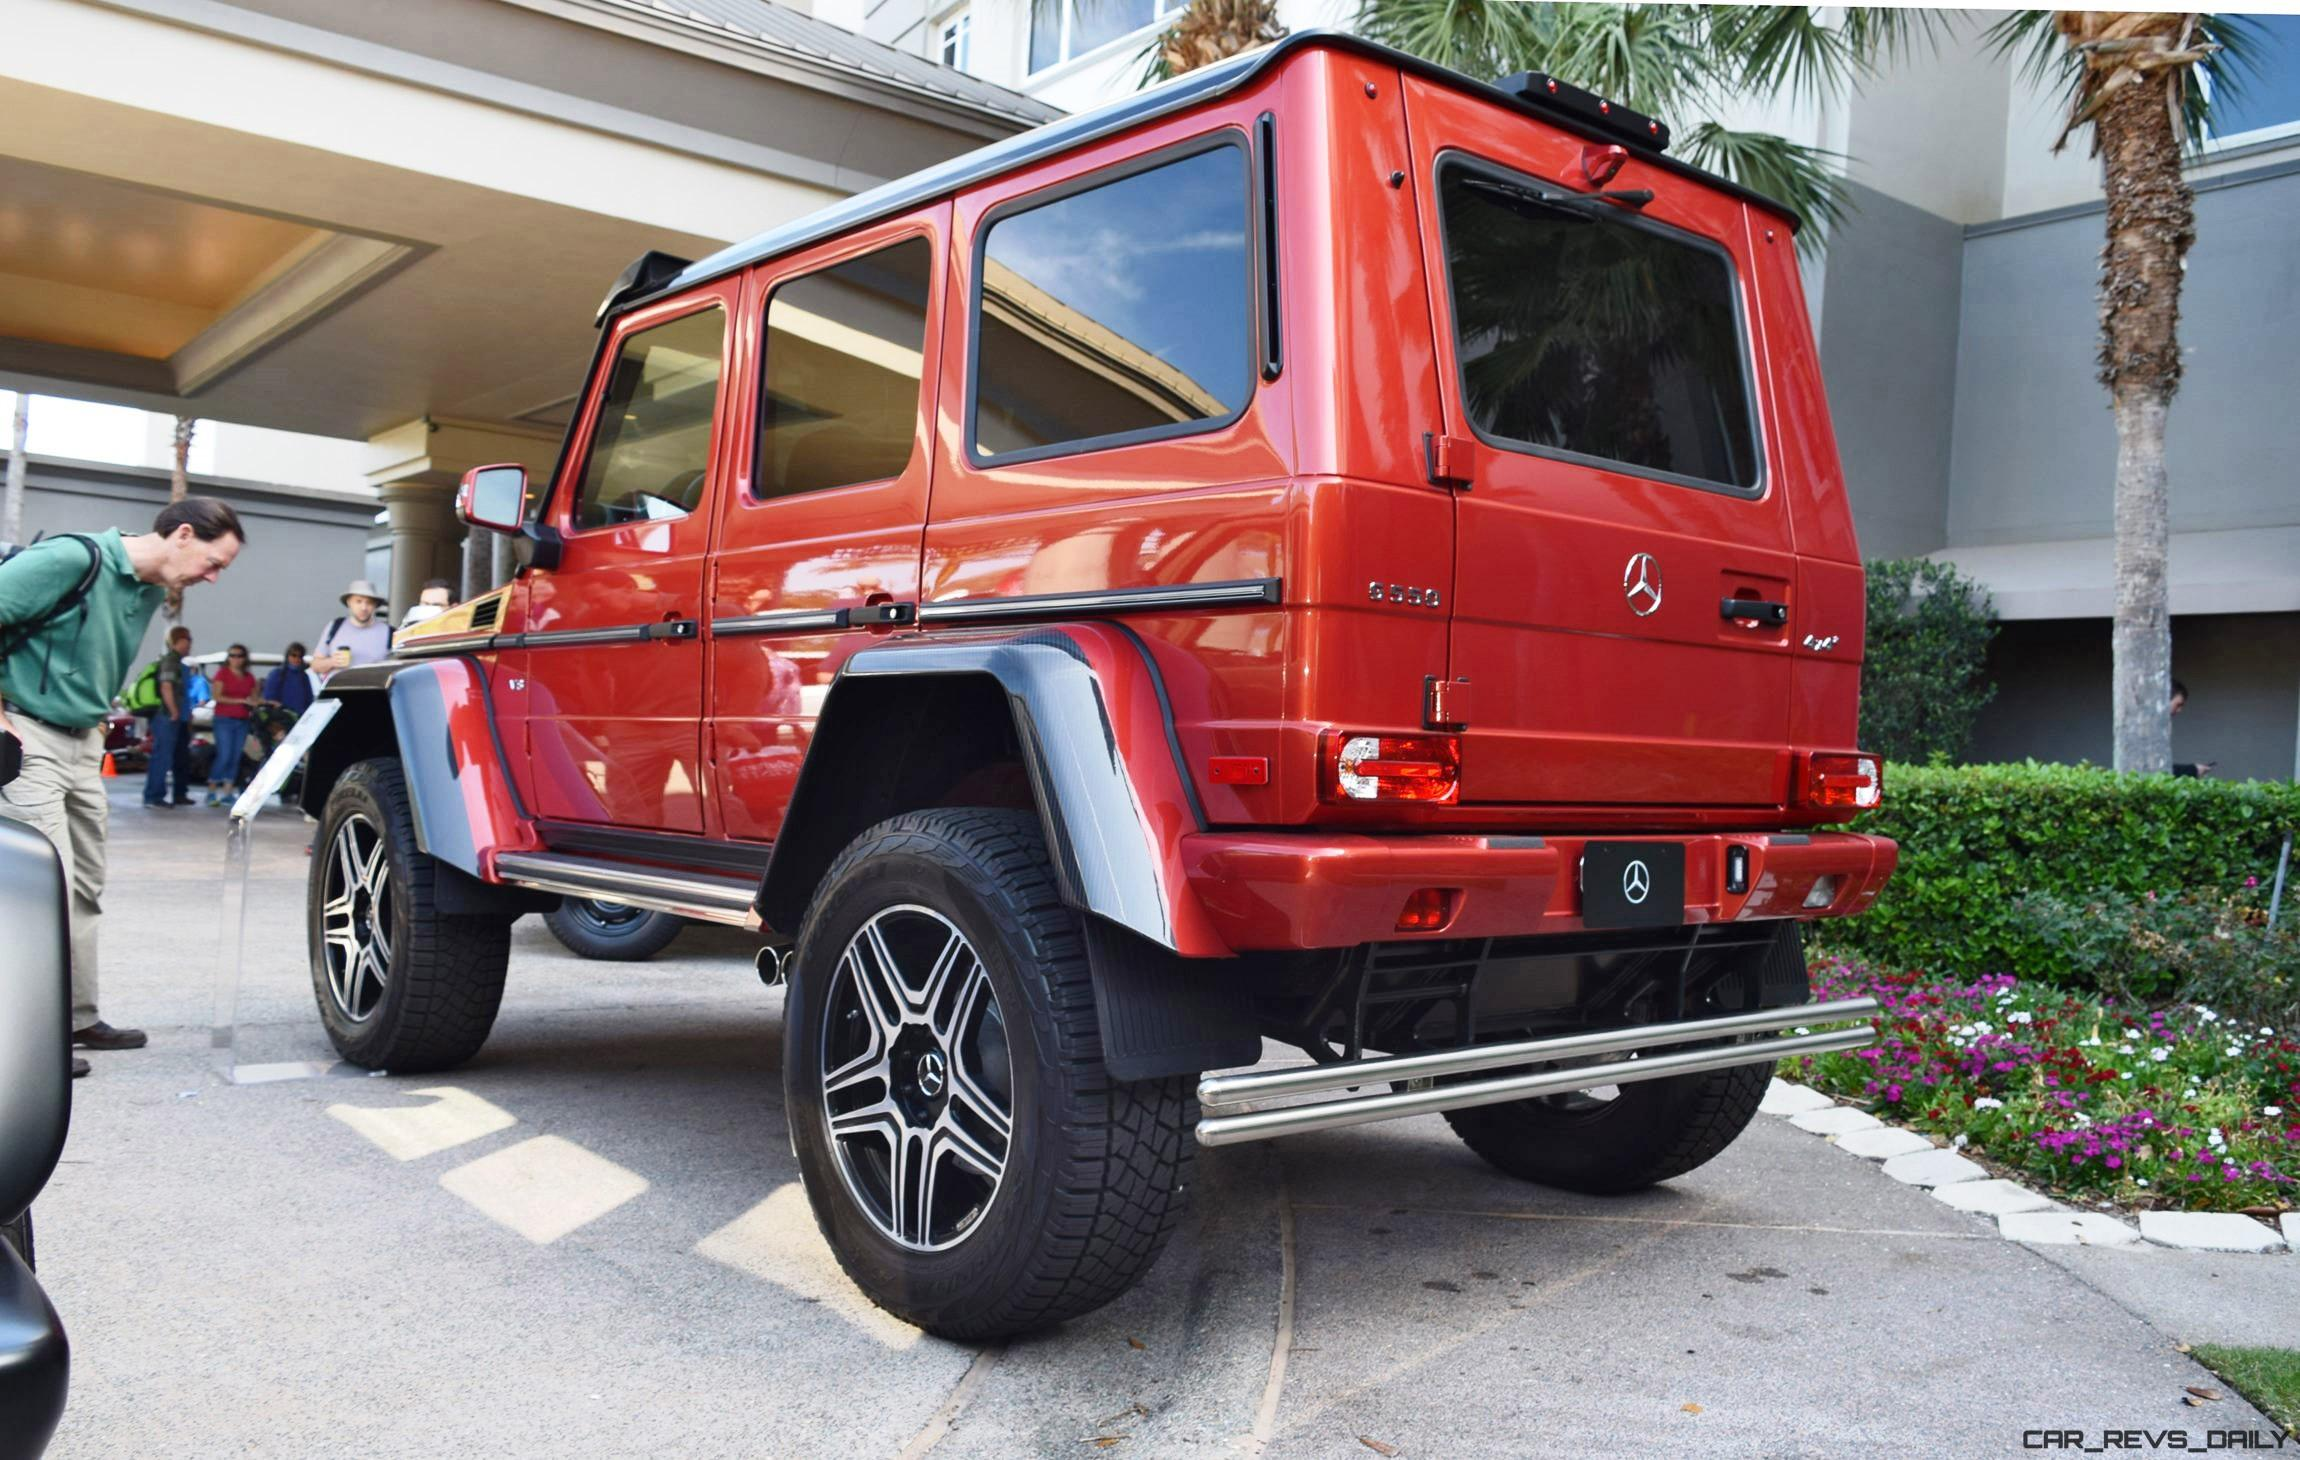 2017 mercedes benz g550 4x4 at amelia island concours 45 for Mercedes benz g550 4x4 squared